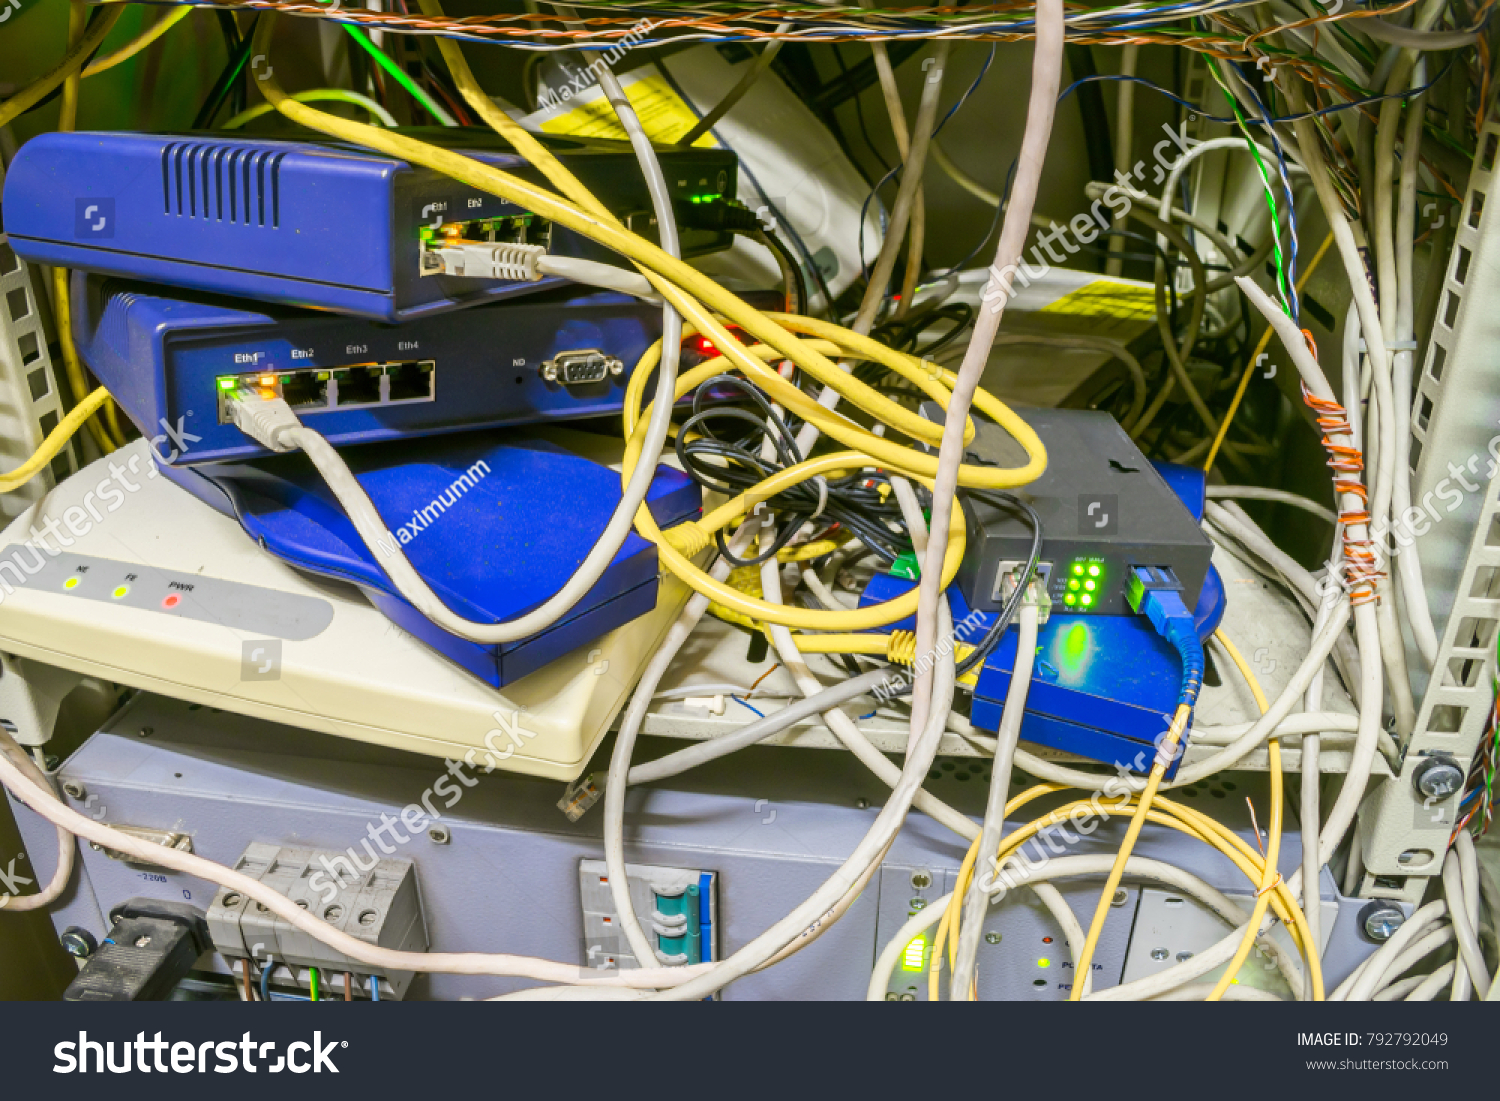 Chaotic Interlacing Wires Between Modems Switches Stock Photo Edit Internet Wiring Box Of And Bridges Rack With Many Network